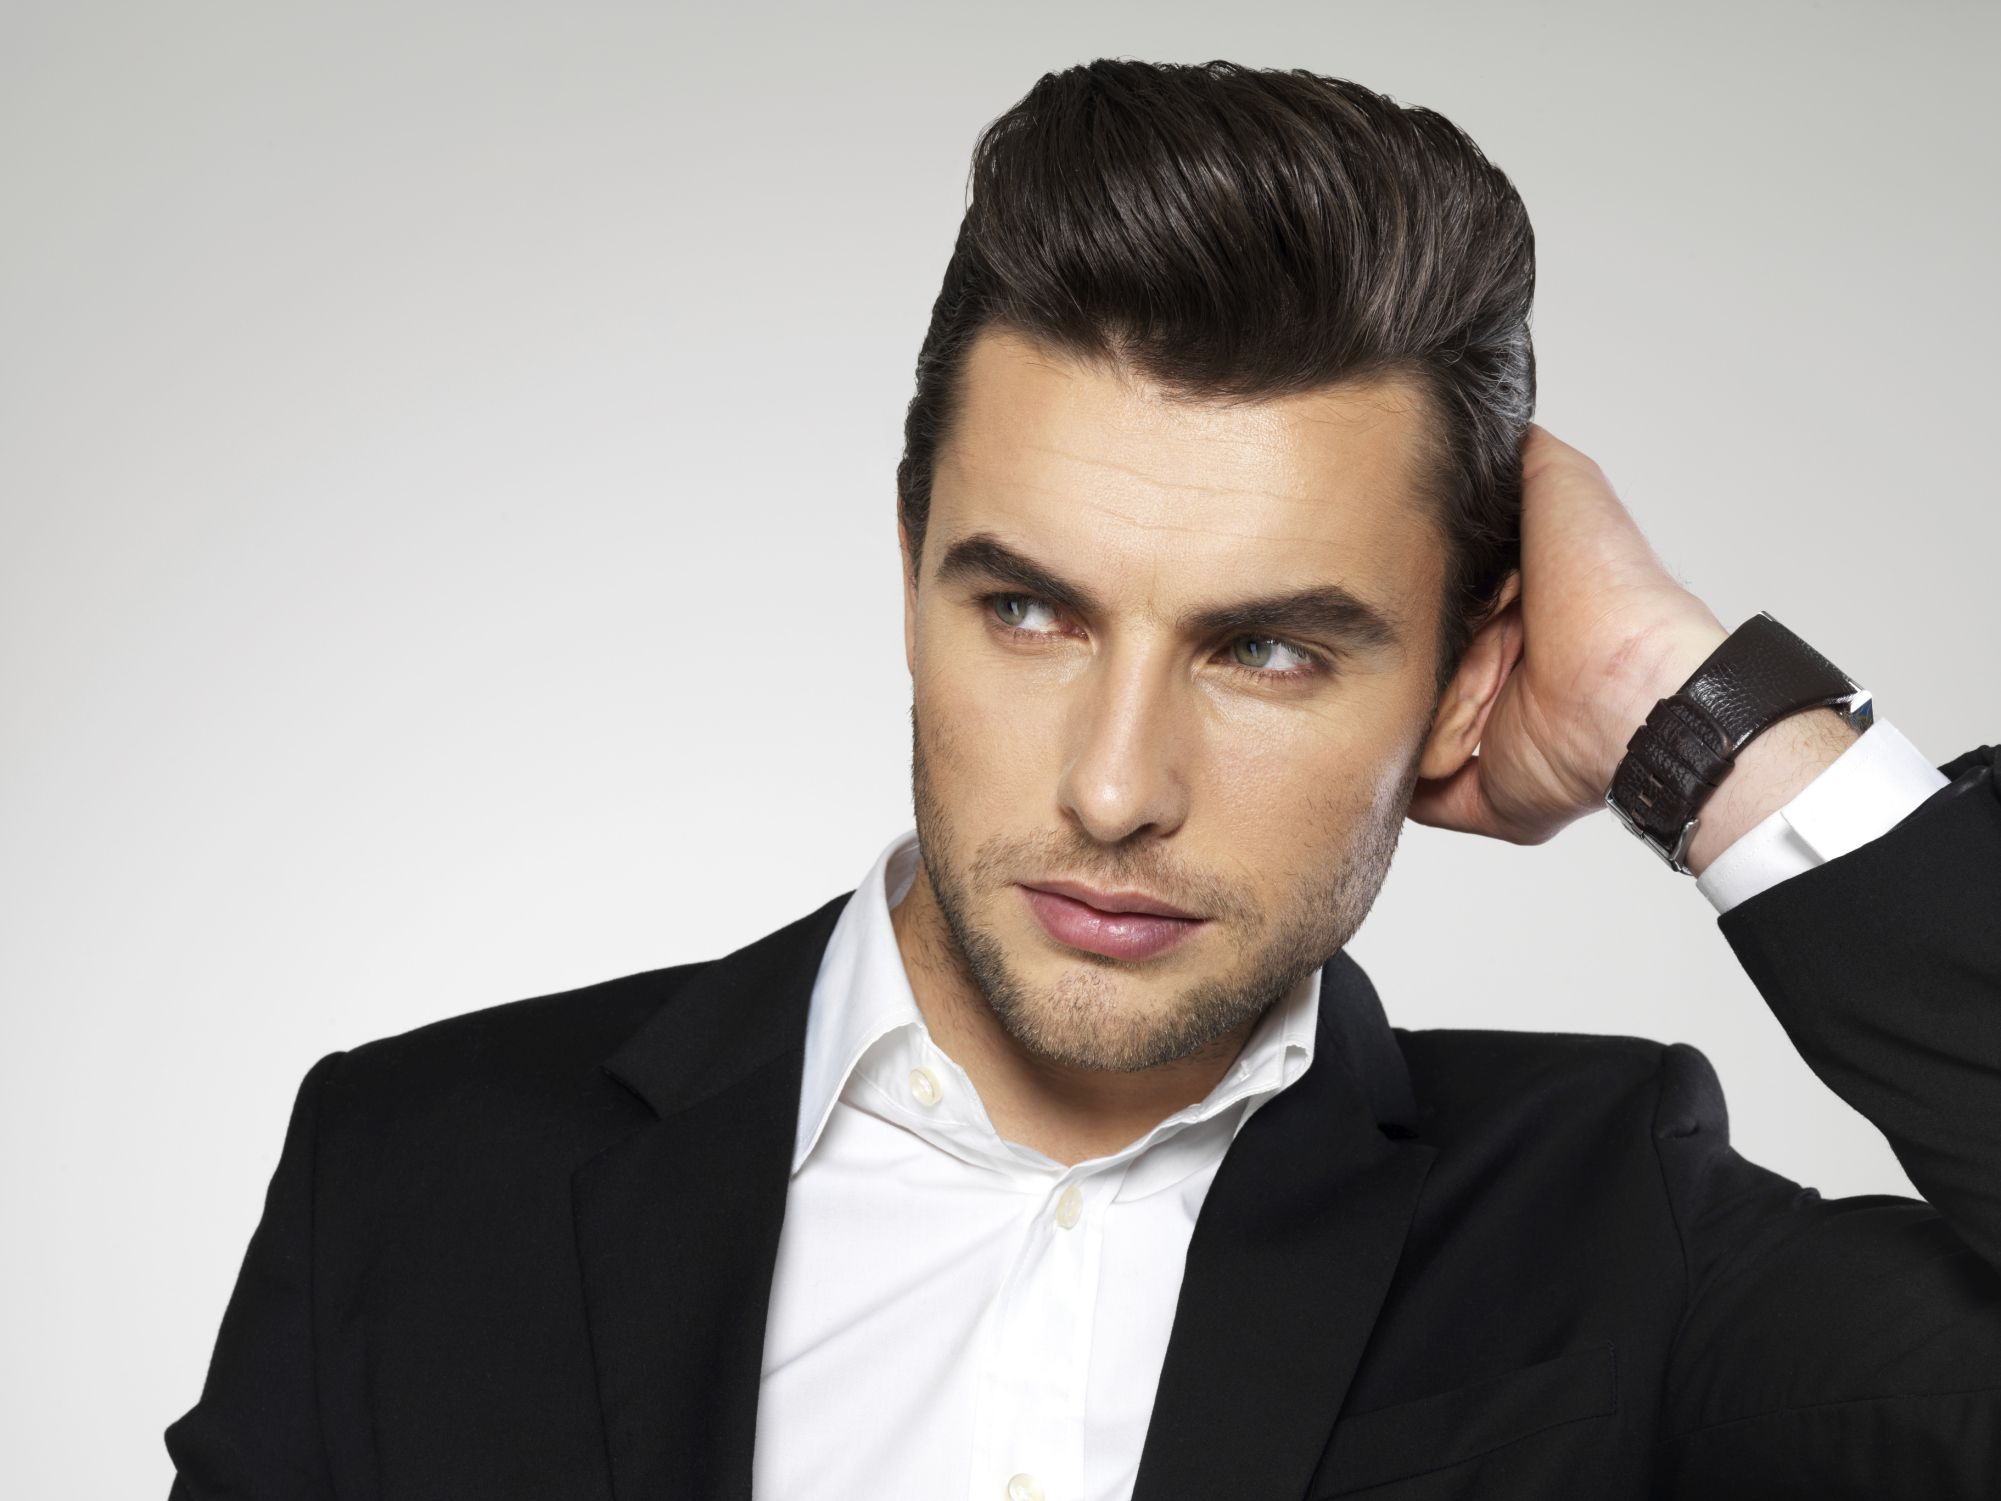 Mens Hair Styling Products - http://hairstyle.zdlongrun.com/mens ...